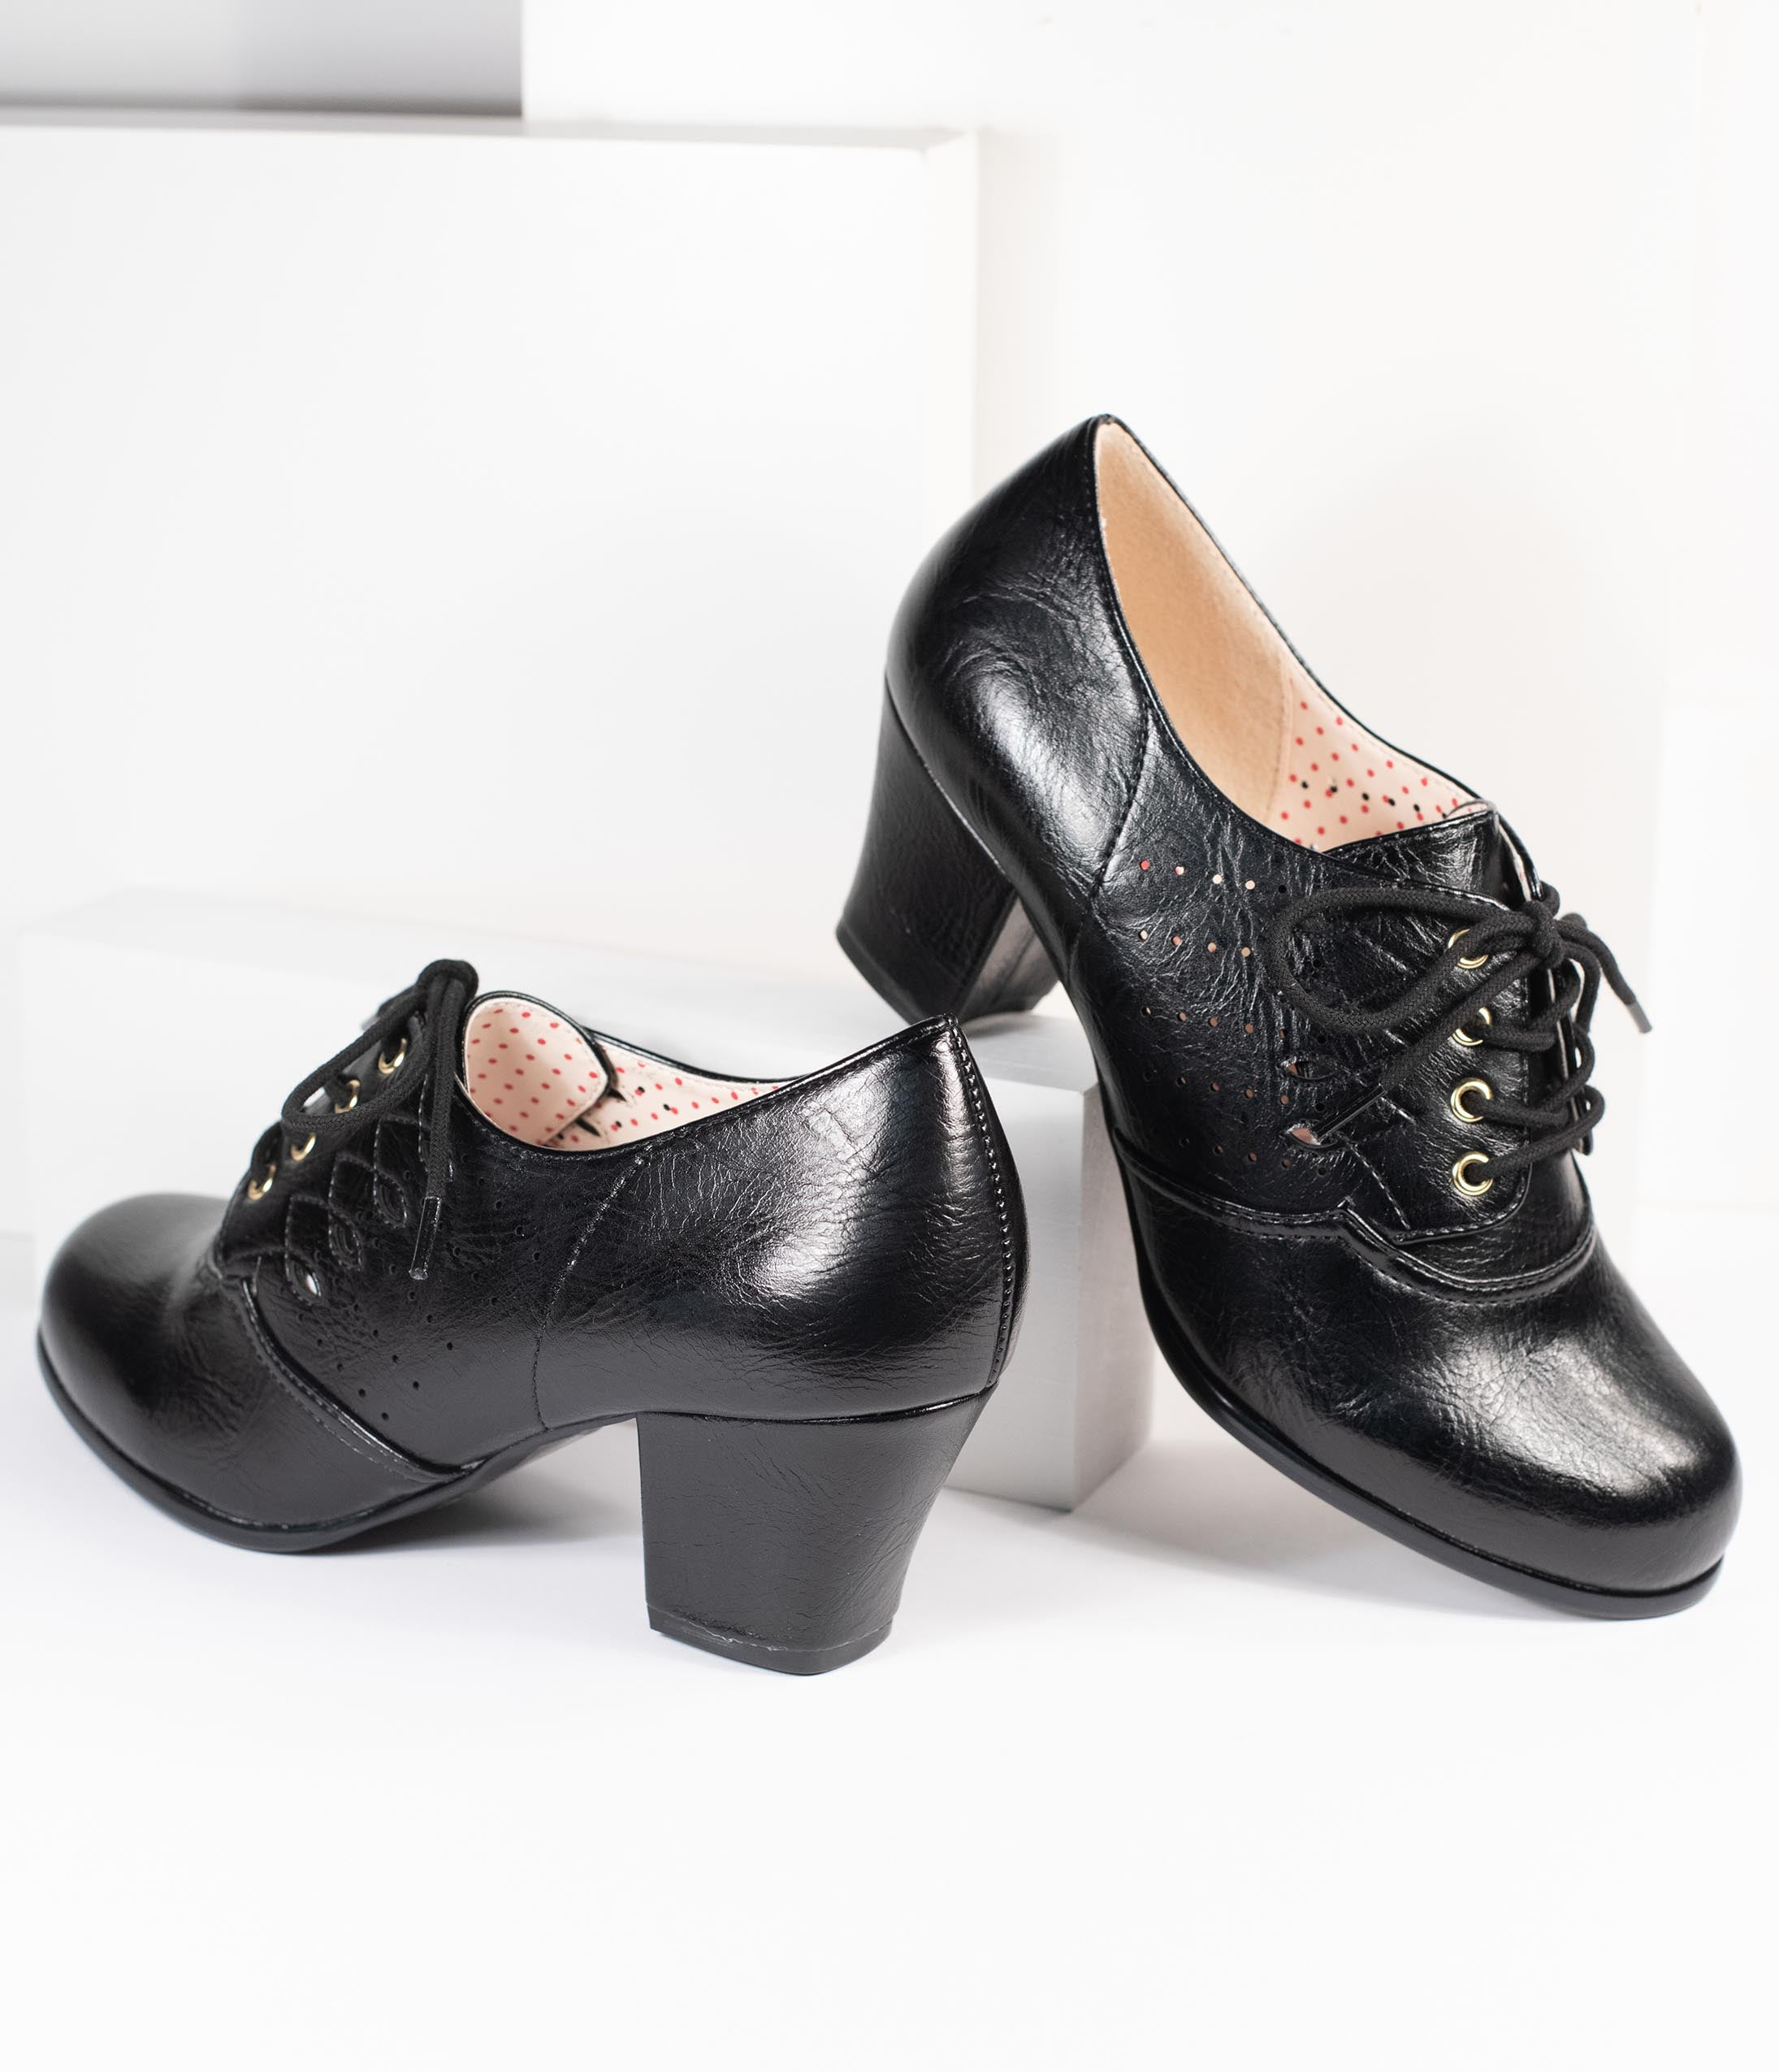 1920s Shoes for UK – T-Bar, Oxfords, Flats B.a.i.t. Black Leatherette Rosie Oxford Heel $74.00 AT vintagedancer.com